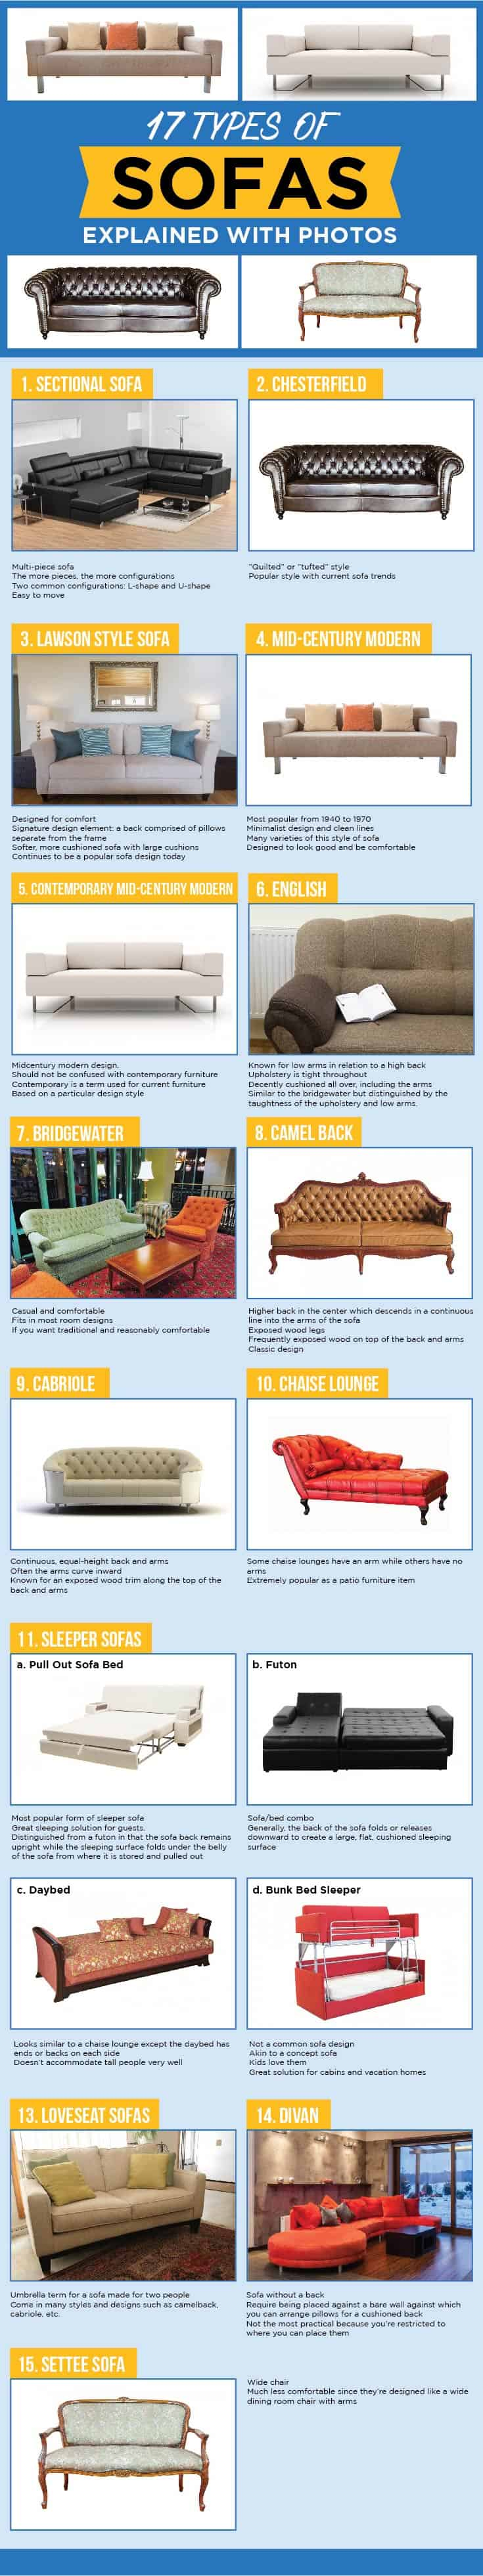 22 Types of Sofas & Couches Explained (WITH PICTURES)